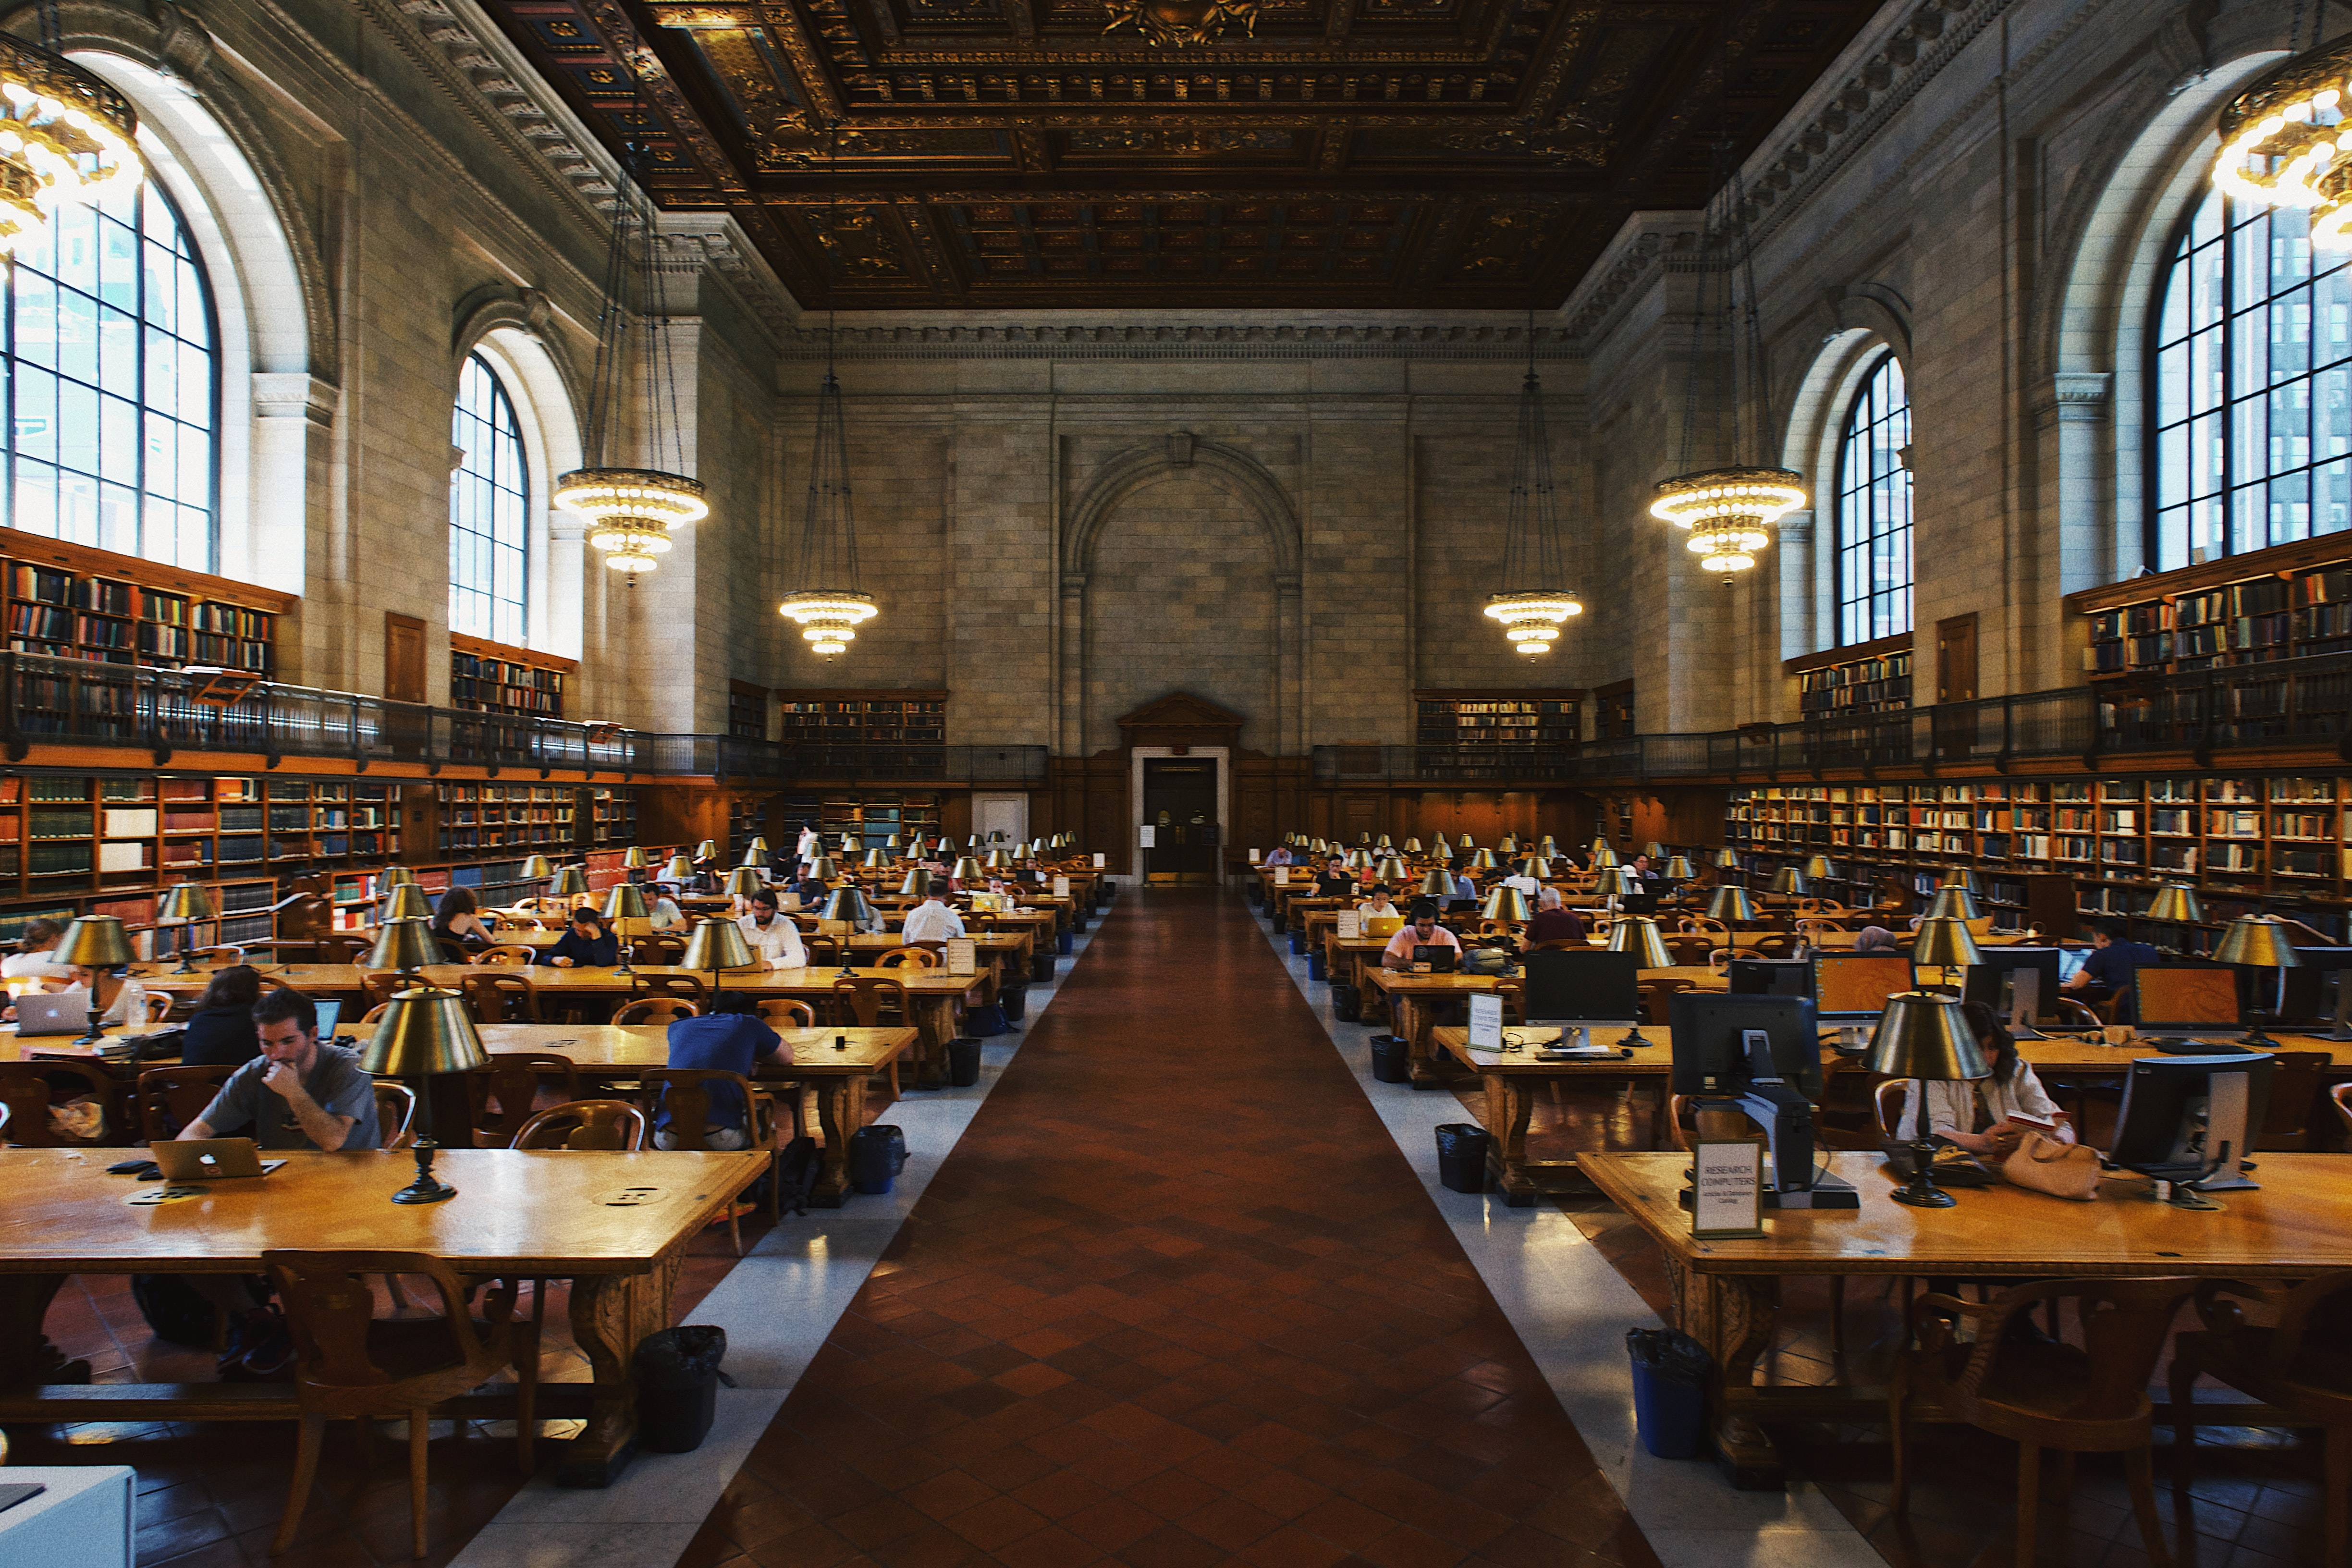 Inside the Mid-Manhattan Library in New York